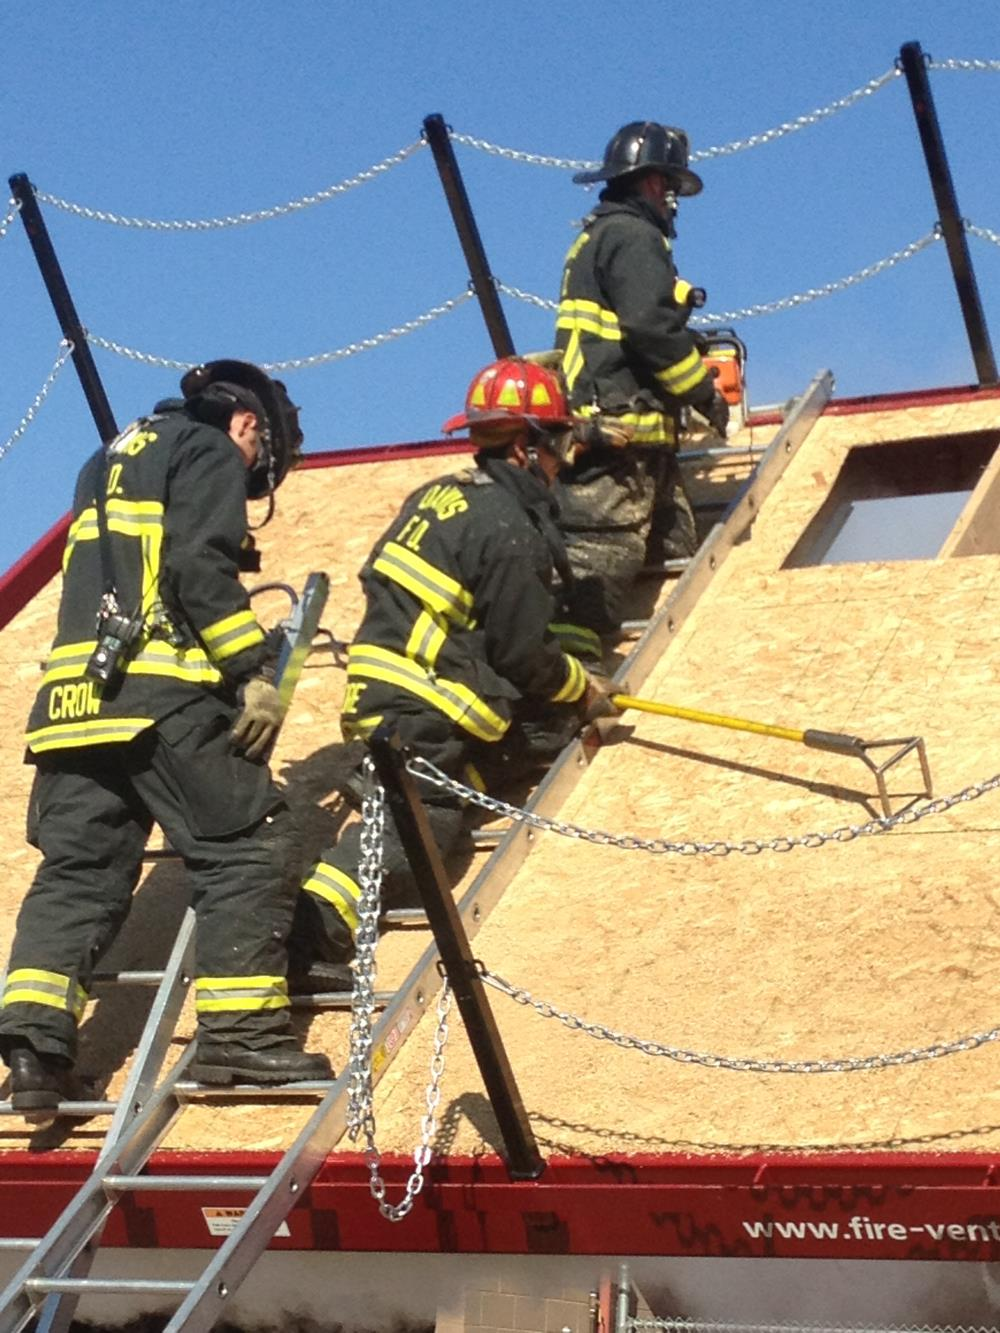 Firefighters at training on roof